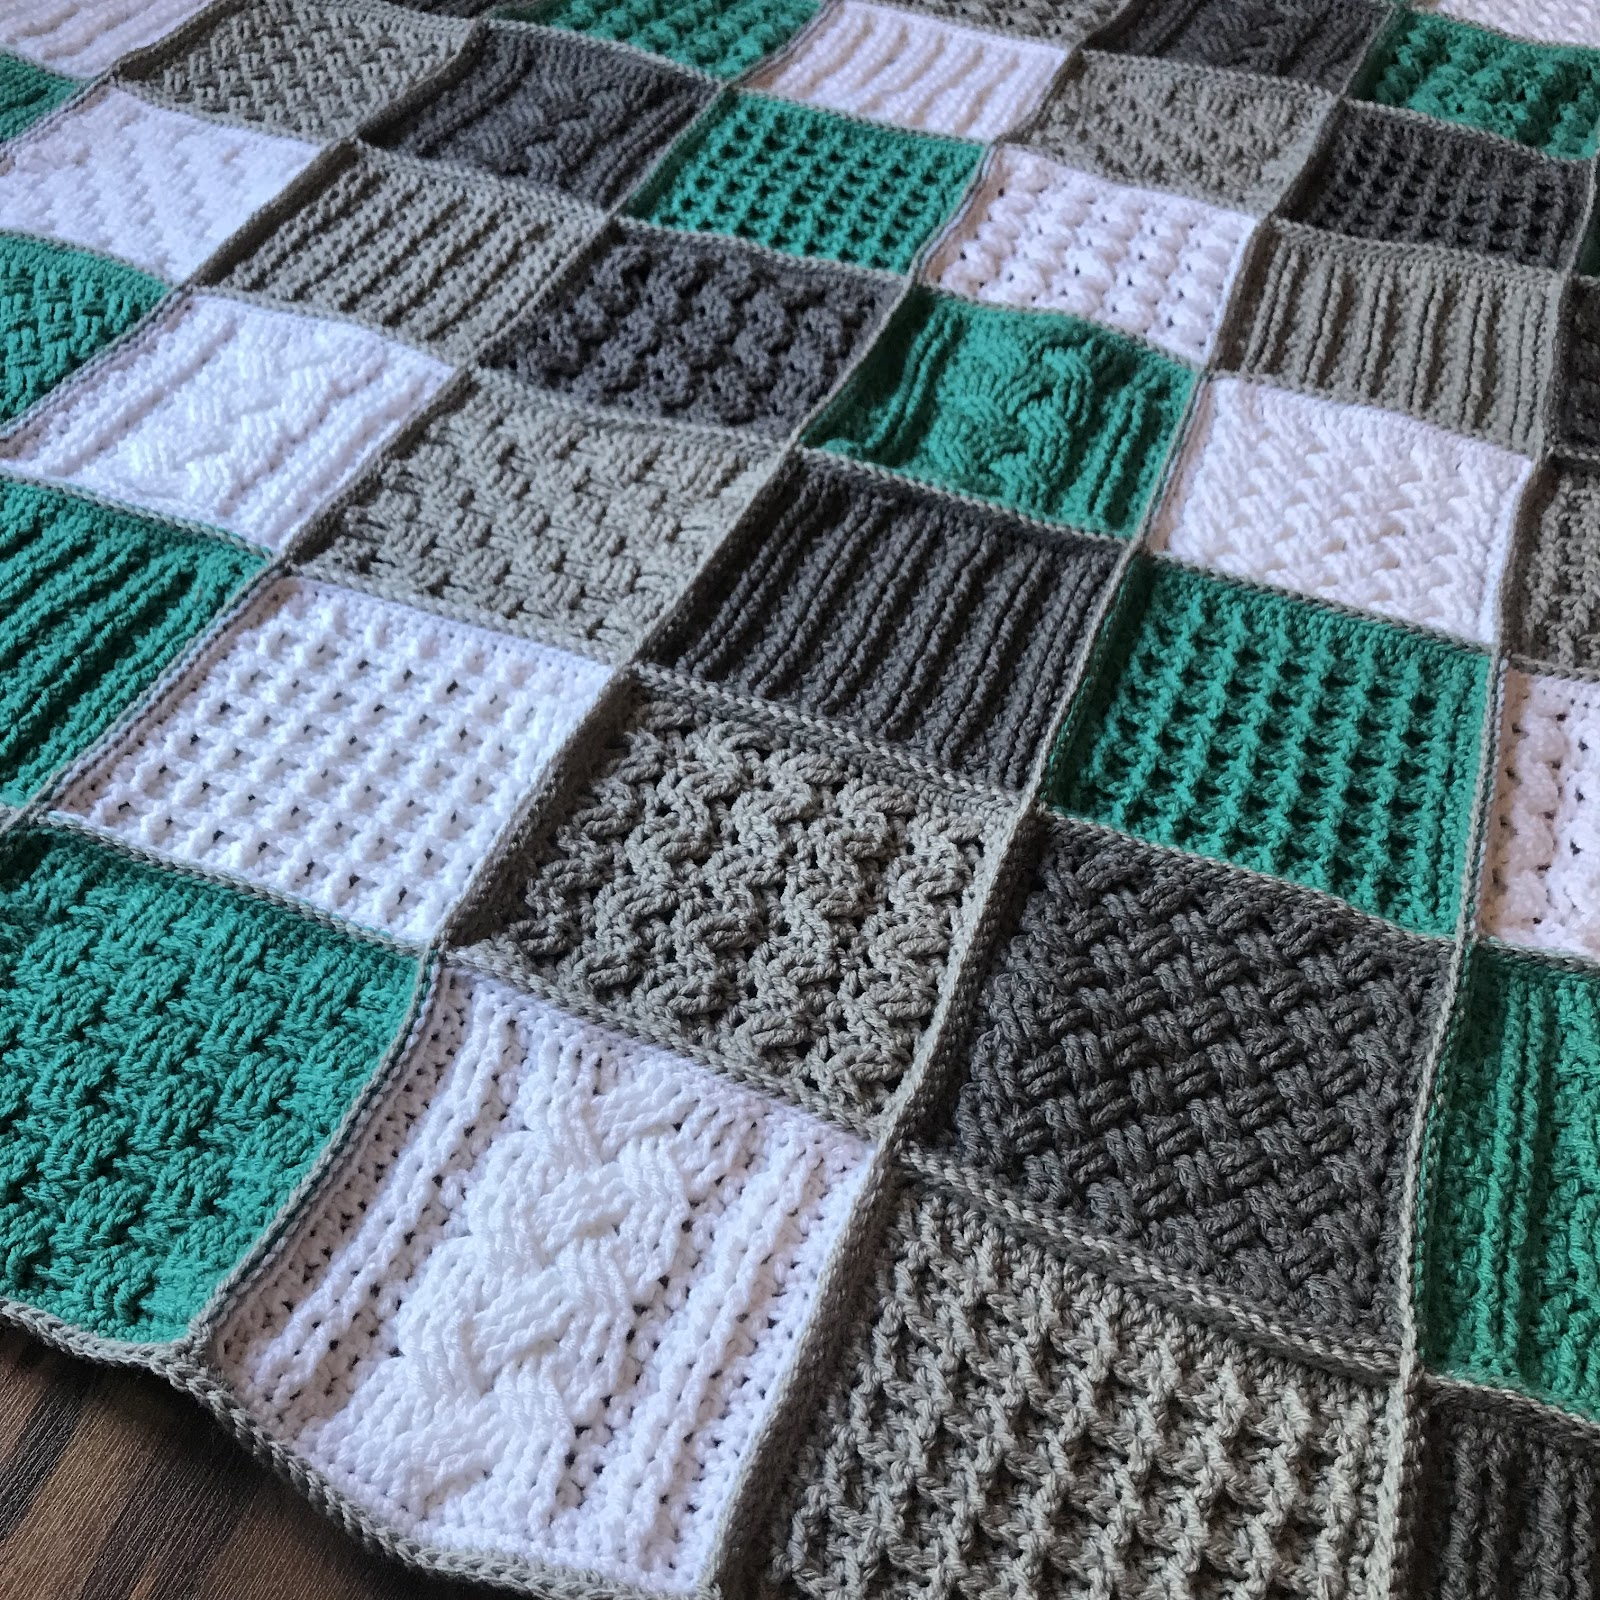 Construction Textured Fun Blanket Crochet Along Crochet It Creations,Smoked Prime Rib Roast Rub